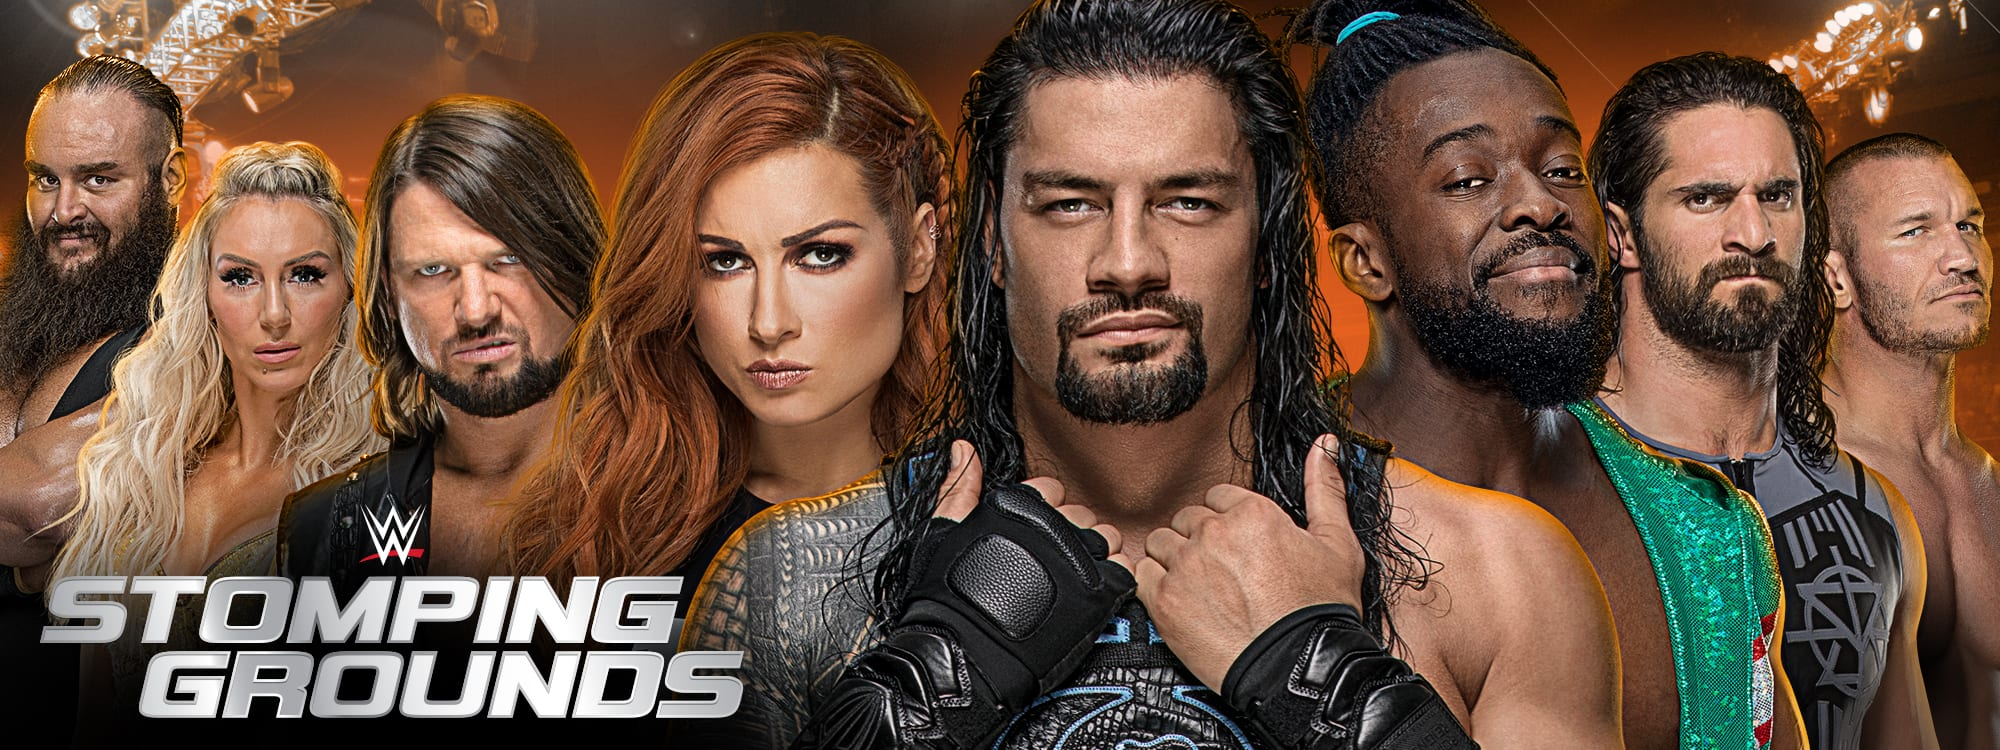 WWE Stomping Grounds 2019 PPV Poster